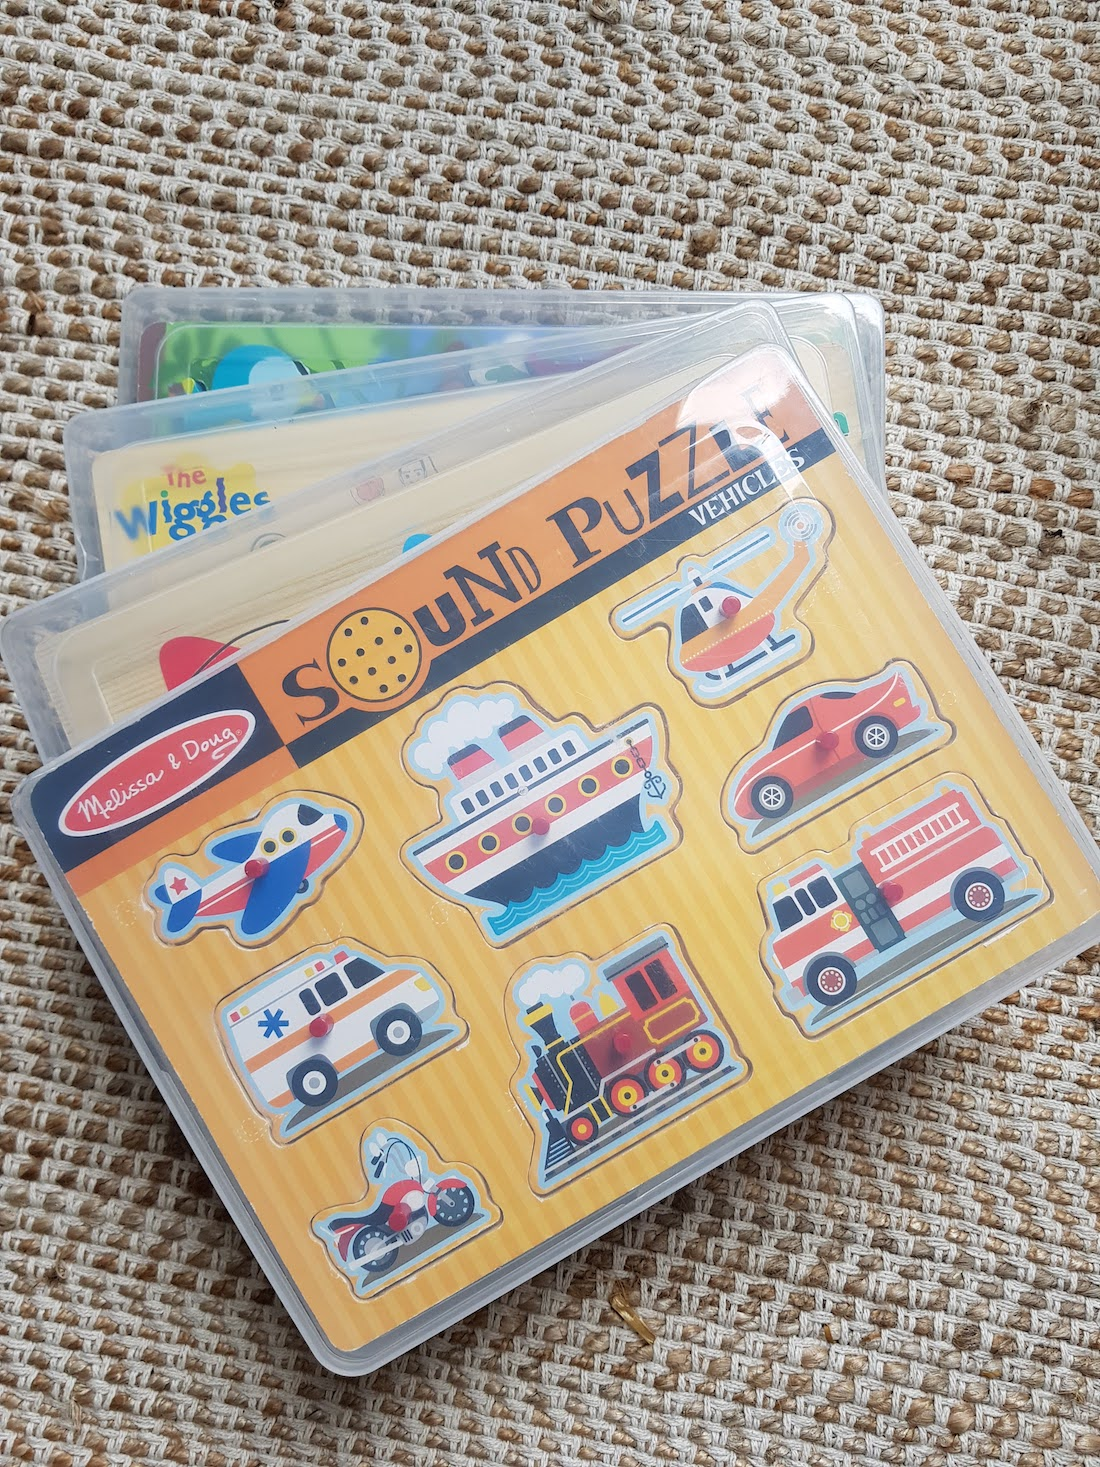 Storing puzzles in plastic A4 document holder